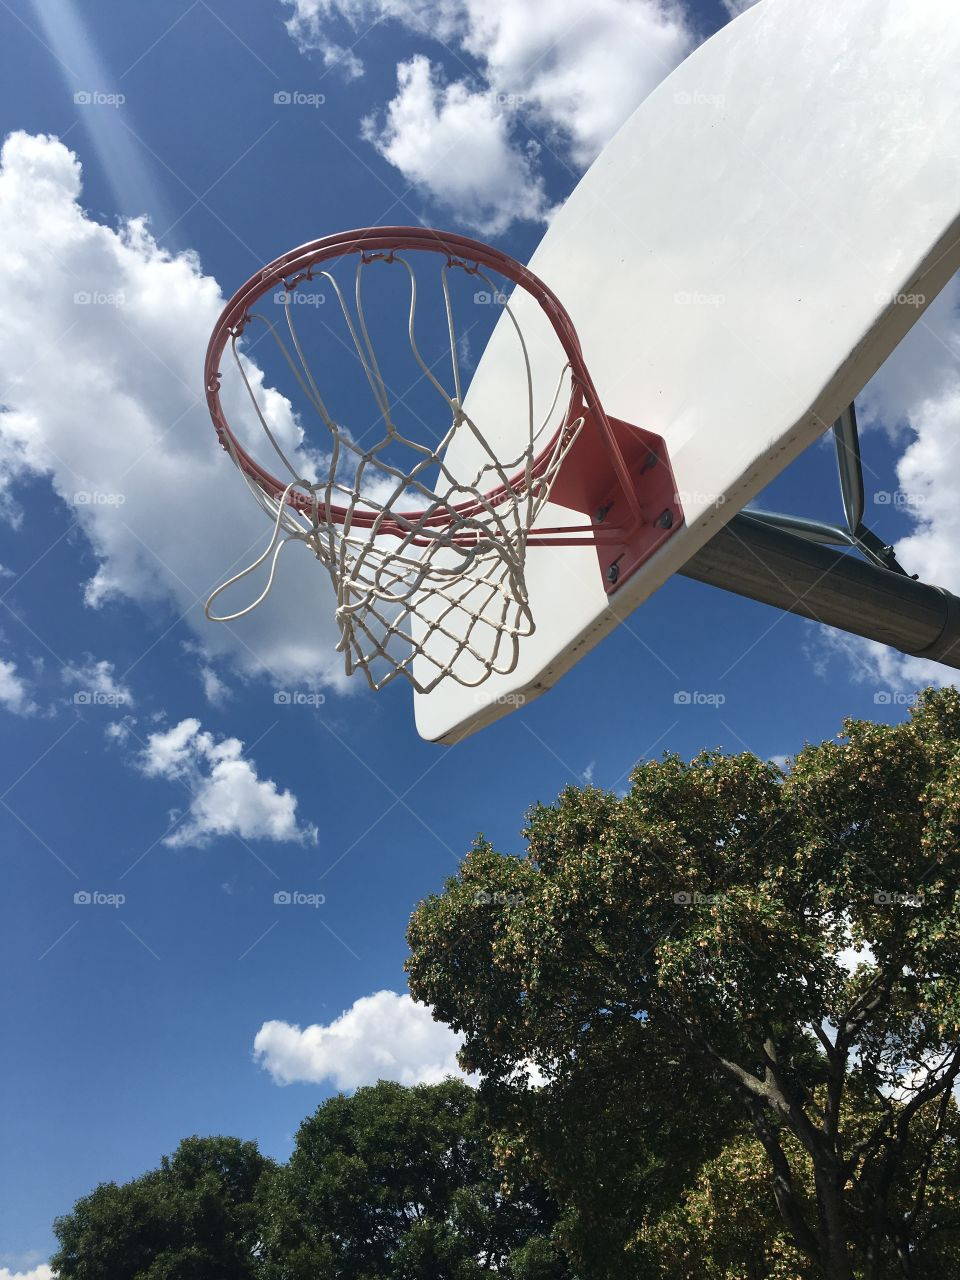 Basketball Net and Blue Sky with Clouds 2